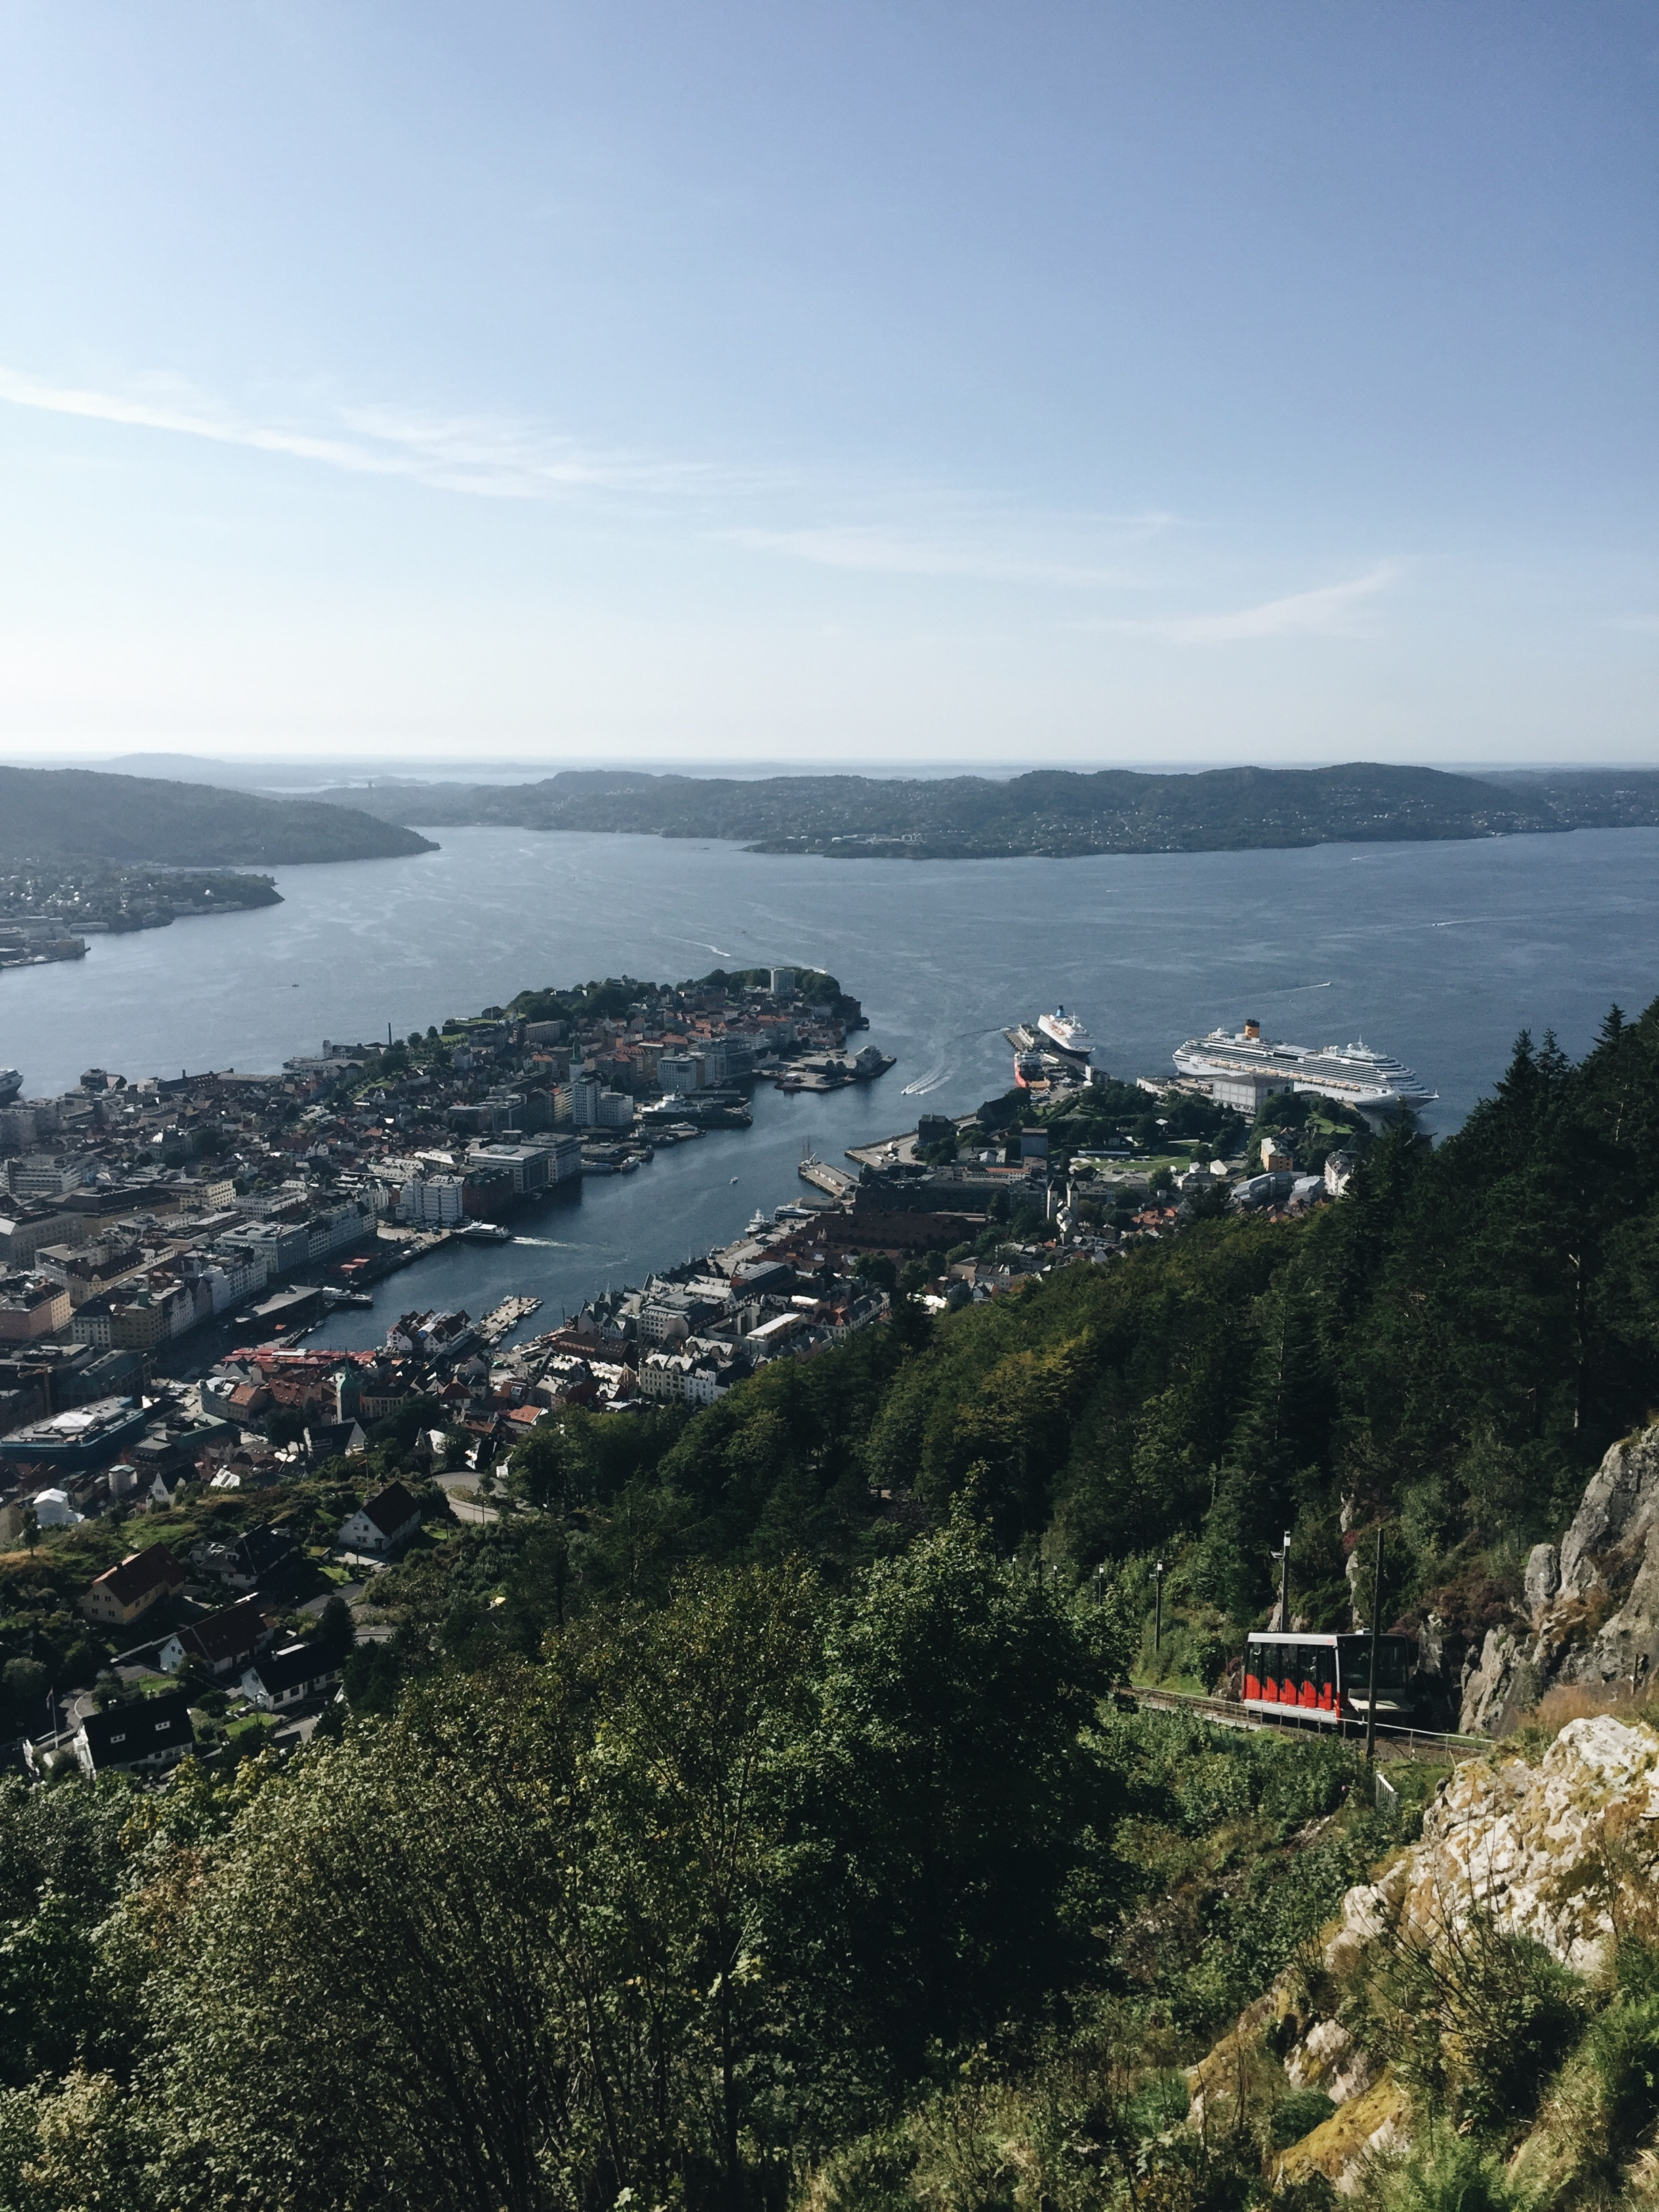 The harbor as seen from the top of Fløibanen.